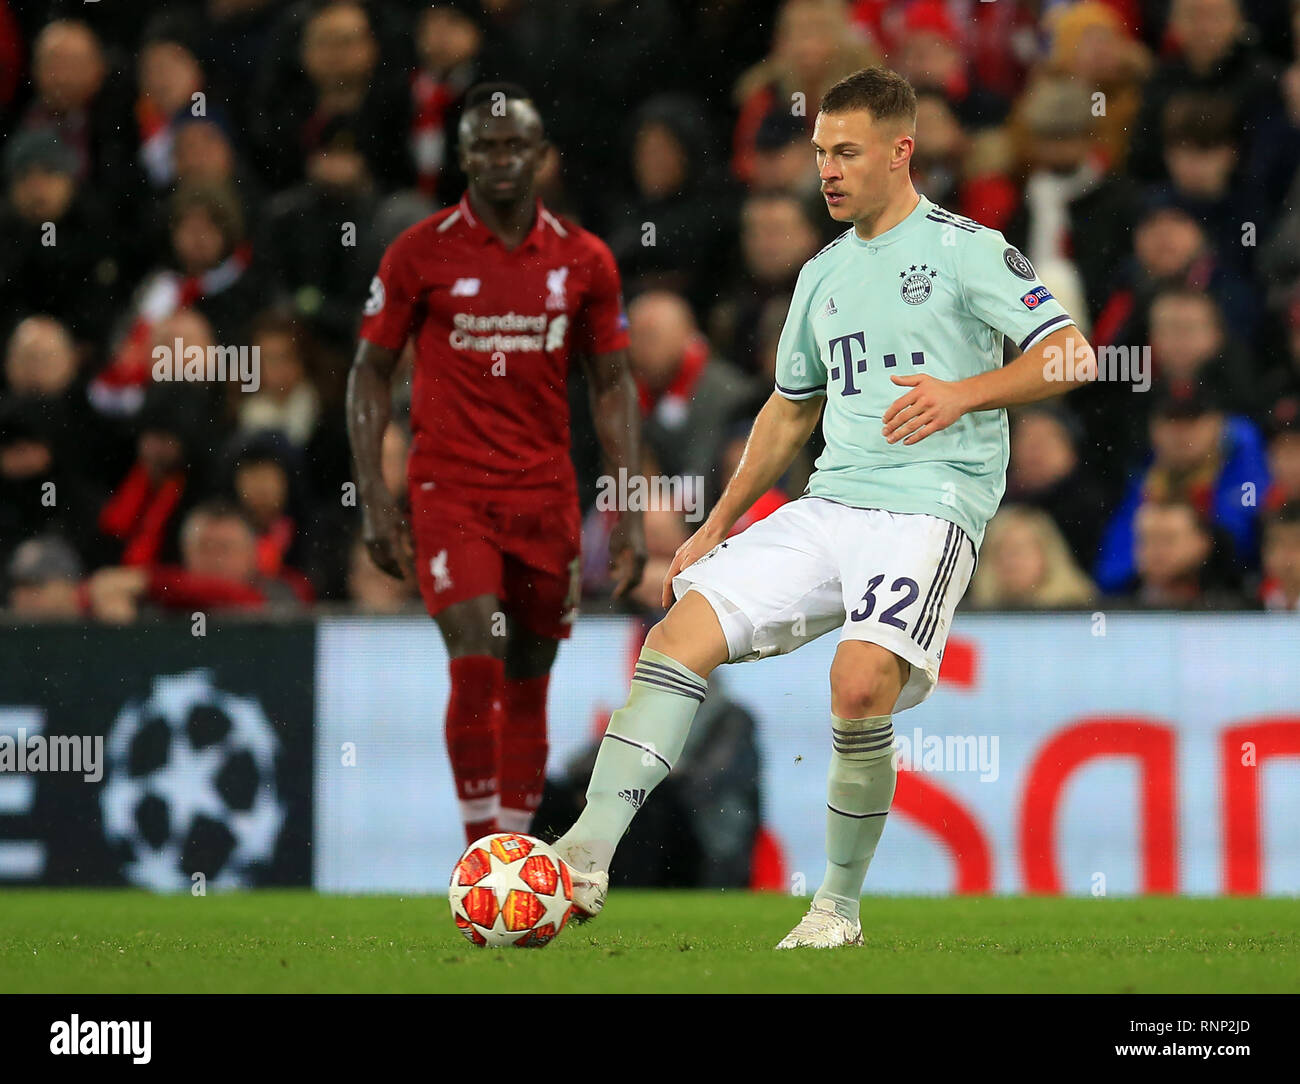 Champions League 4 Matchday Round Season 2018 2019: Joshua Kimmich Stock Photos & Joshua Kimmich Stock Images